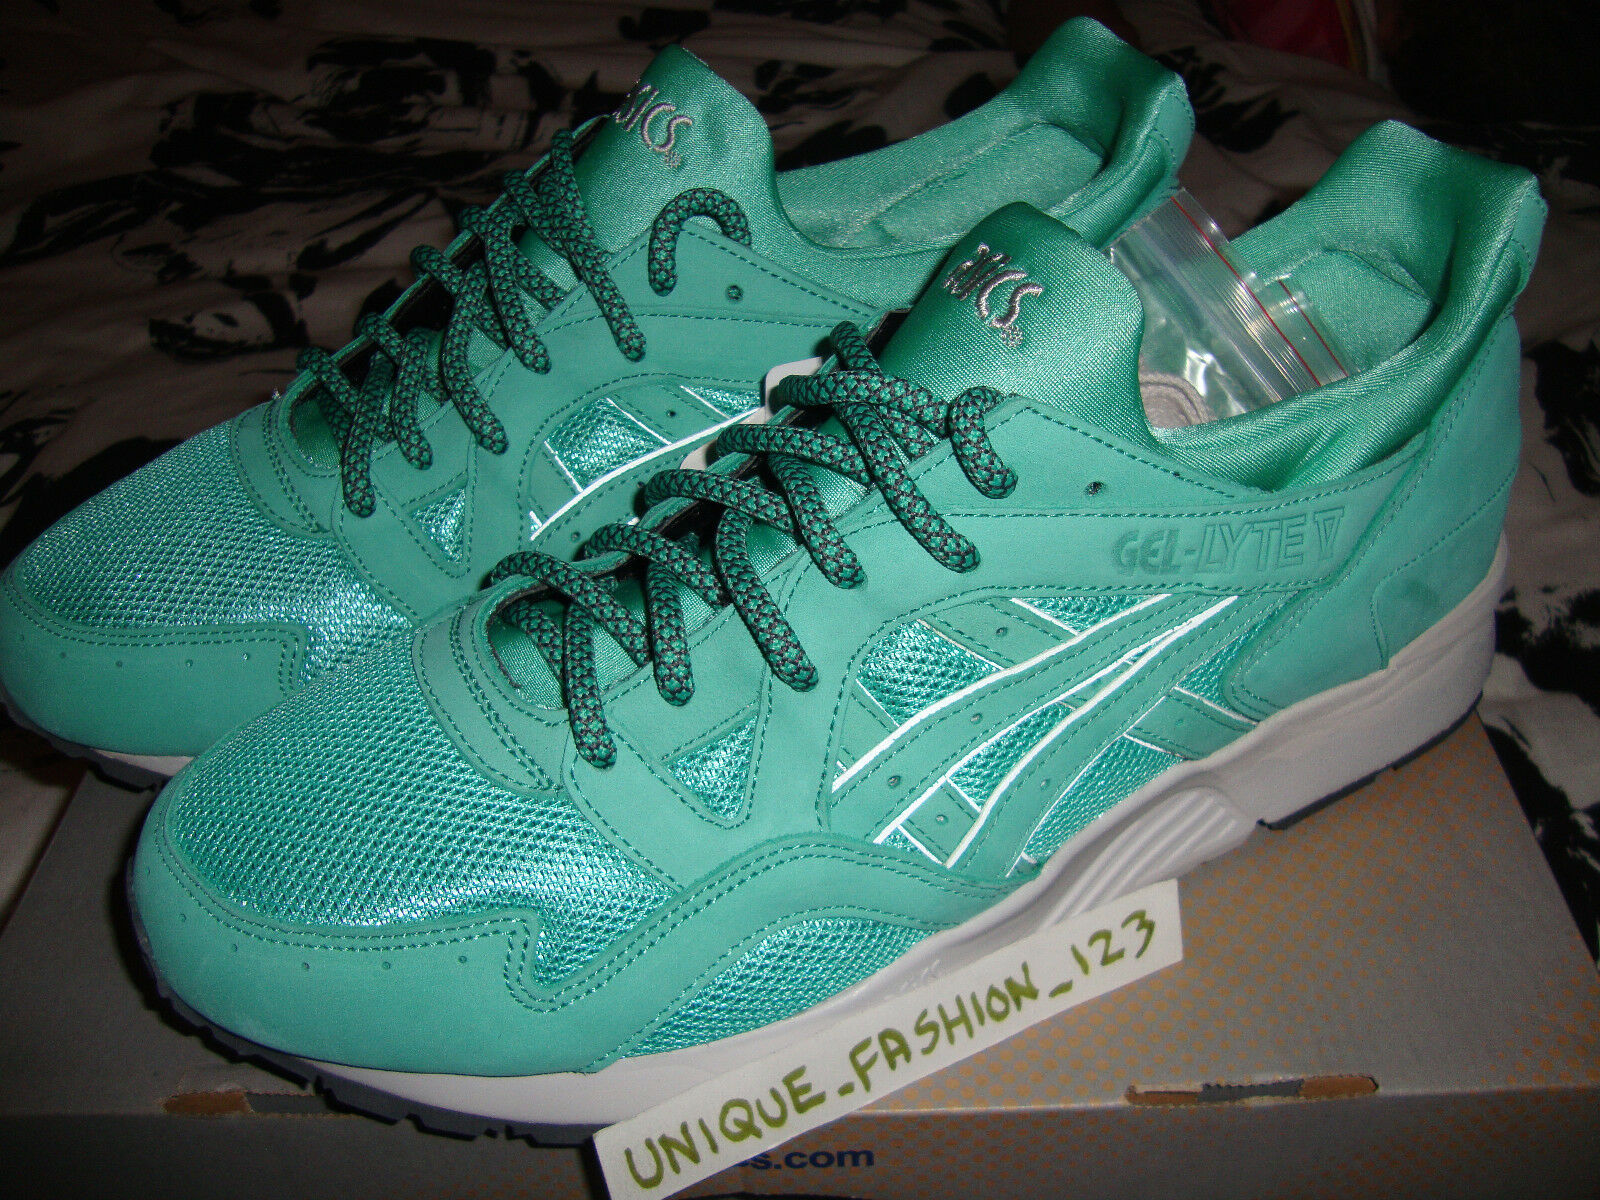 ASICS GEL LYTE V 5 RONNIE FIEG KITH MINT LEAF US 10 ROSE SAGE COVE GOLD Comfortable and good-looking